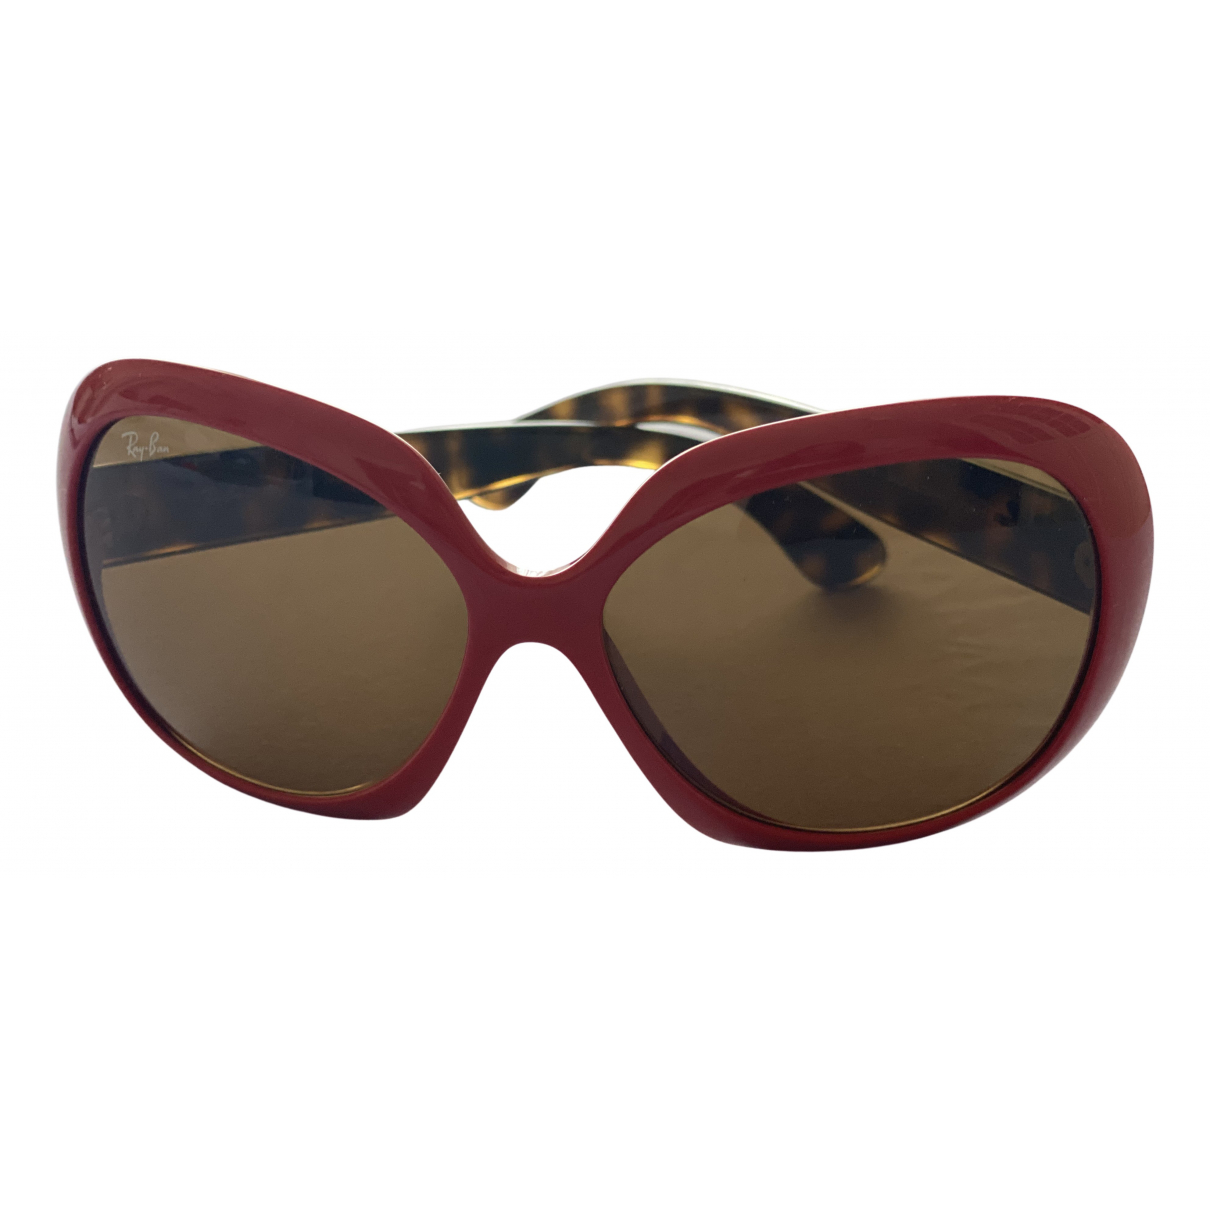 Ray-ban N Red Sunglasses for Women N